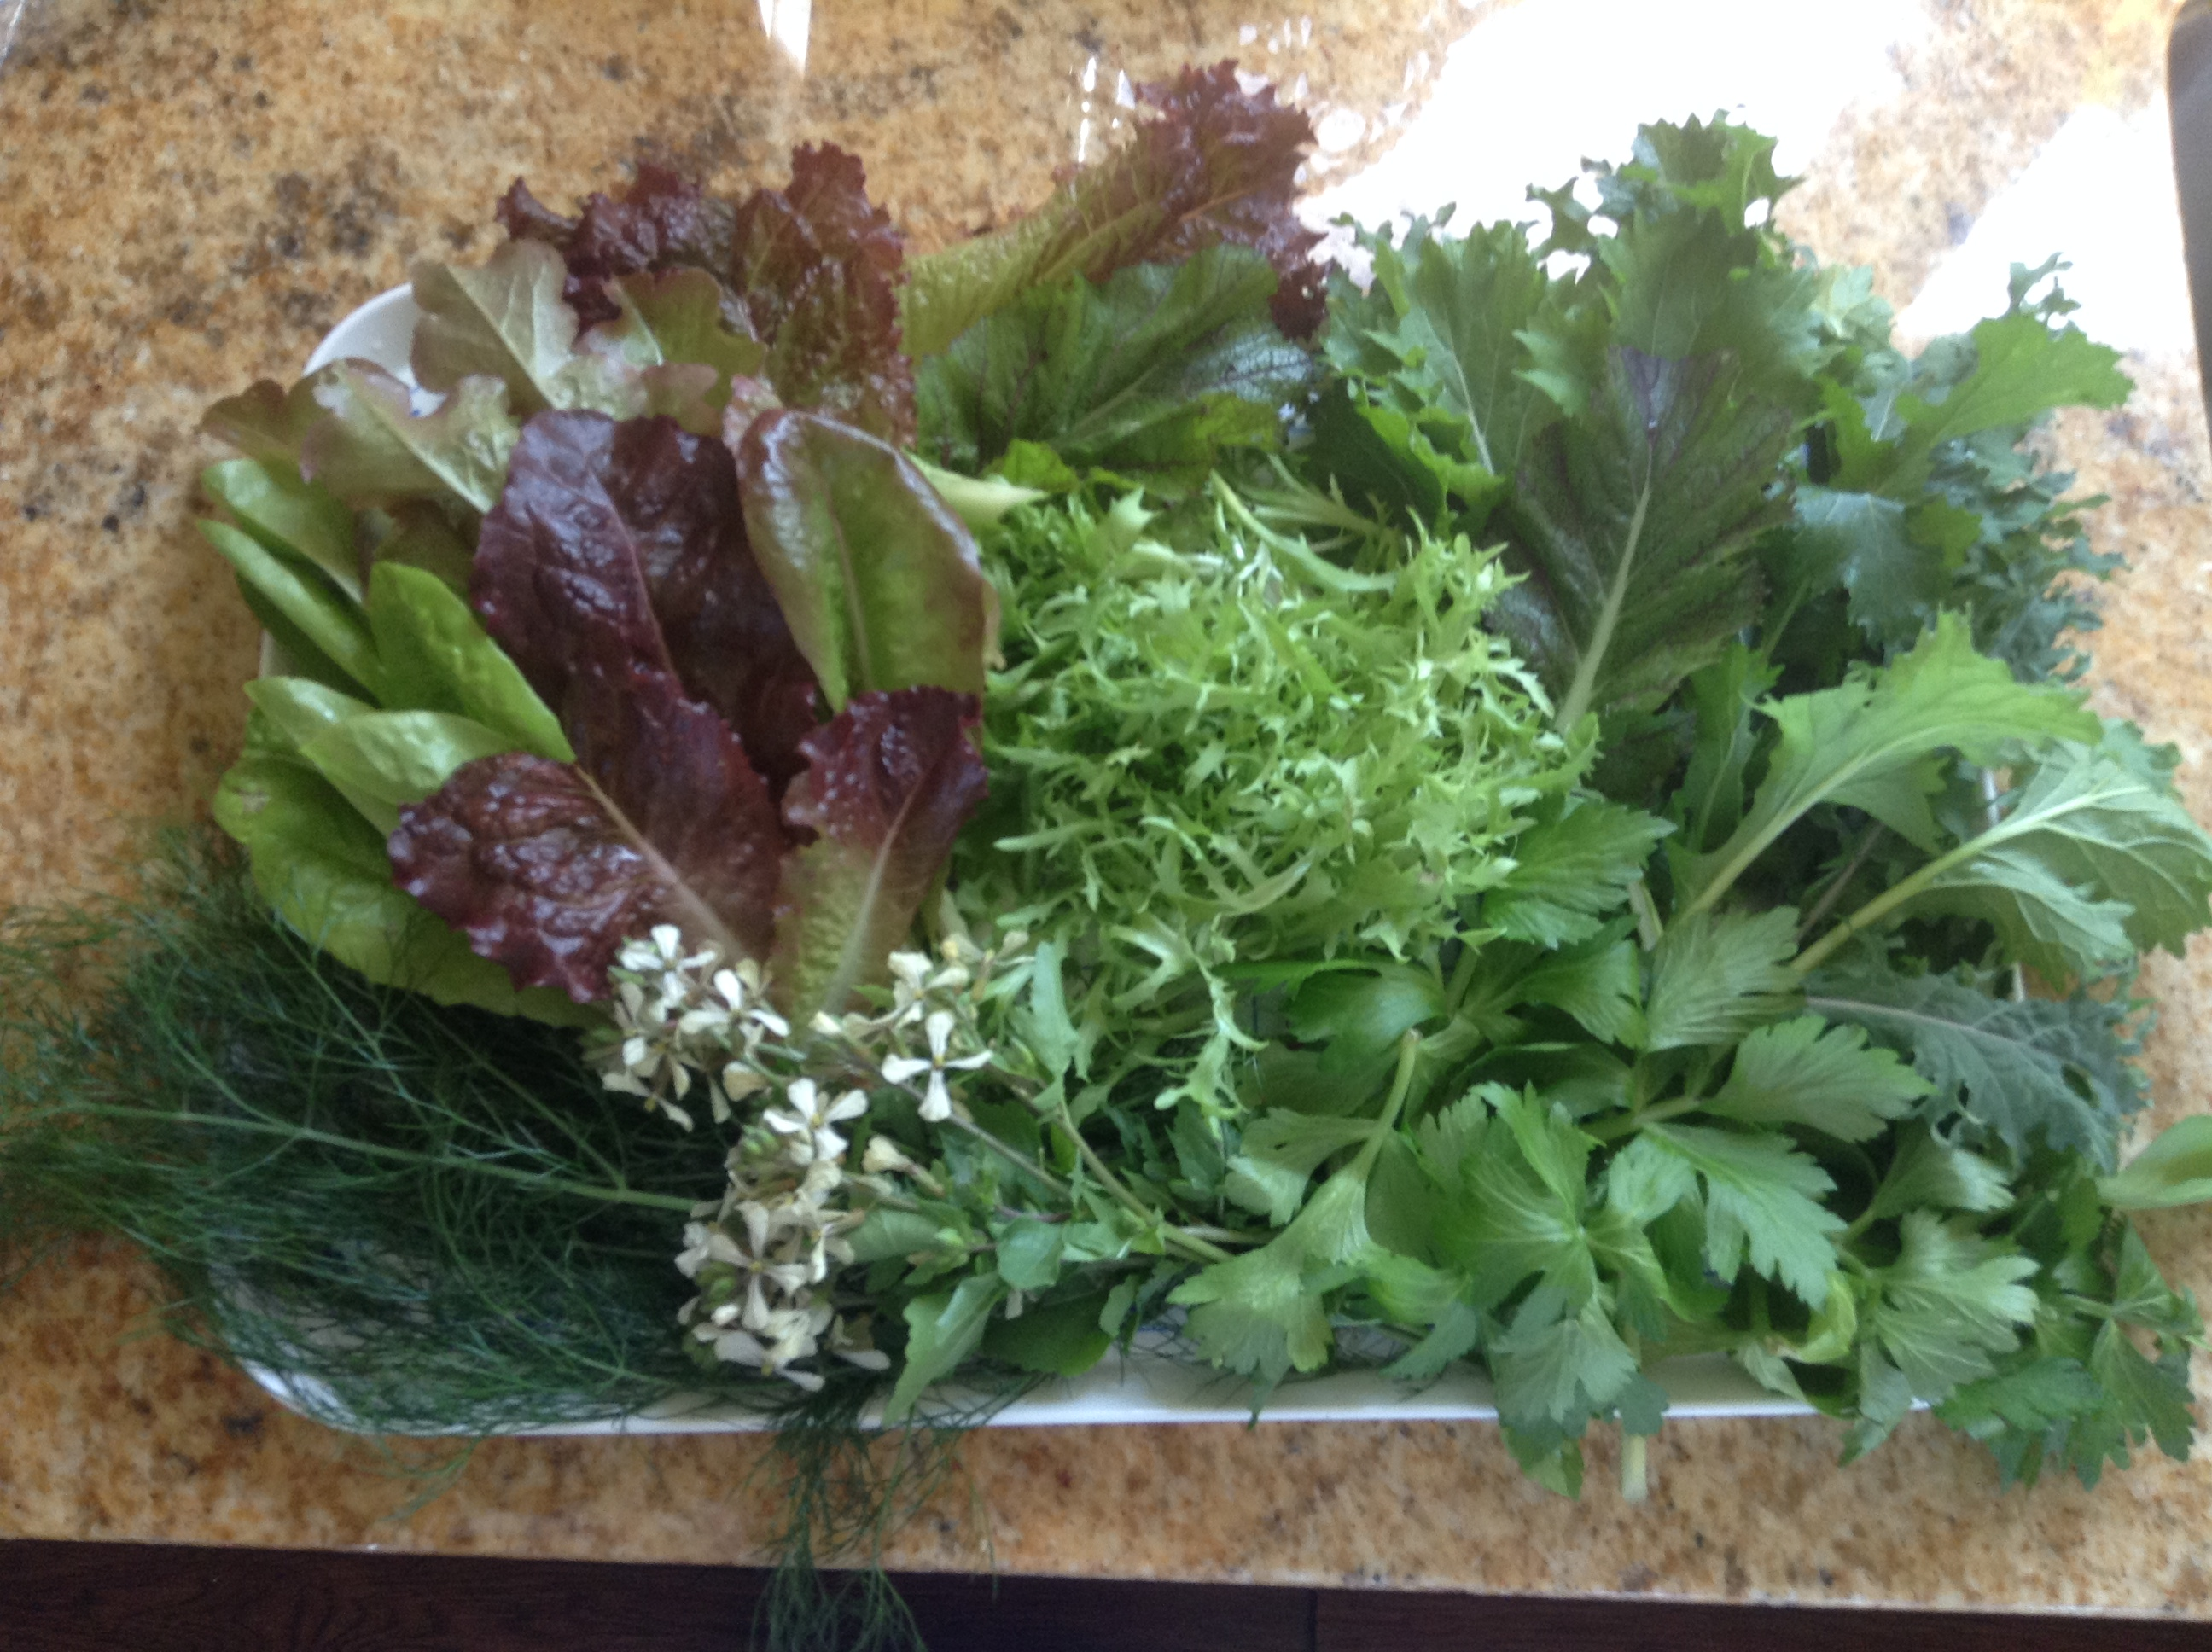 Sue doesn't just give me greens, she presents them on a tray